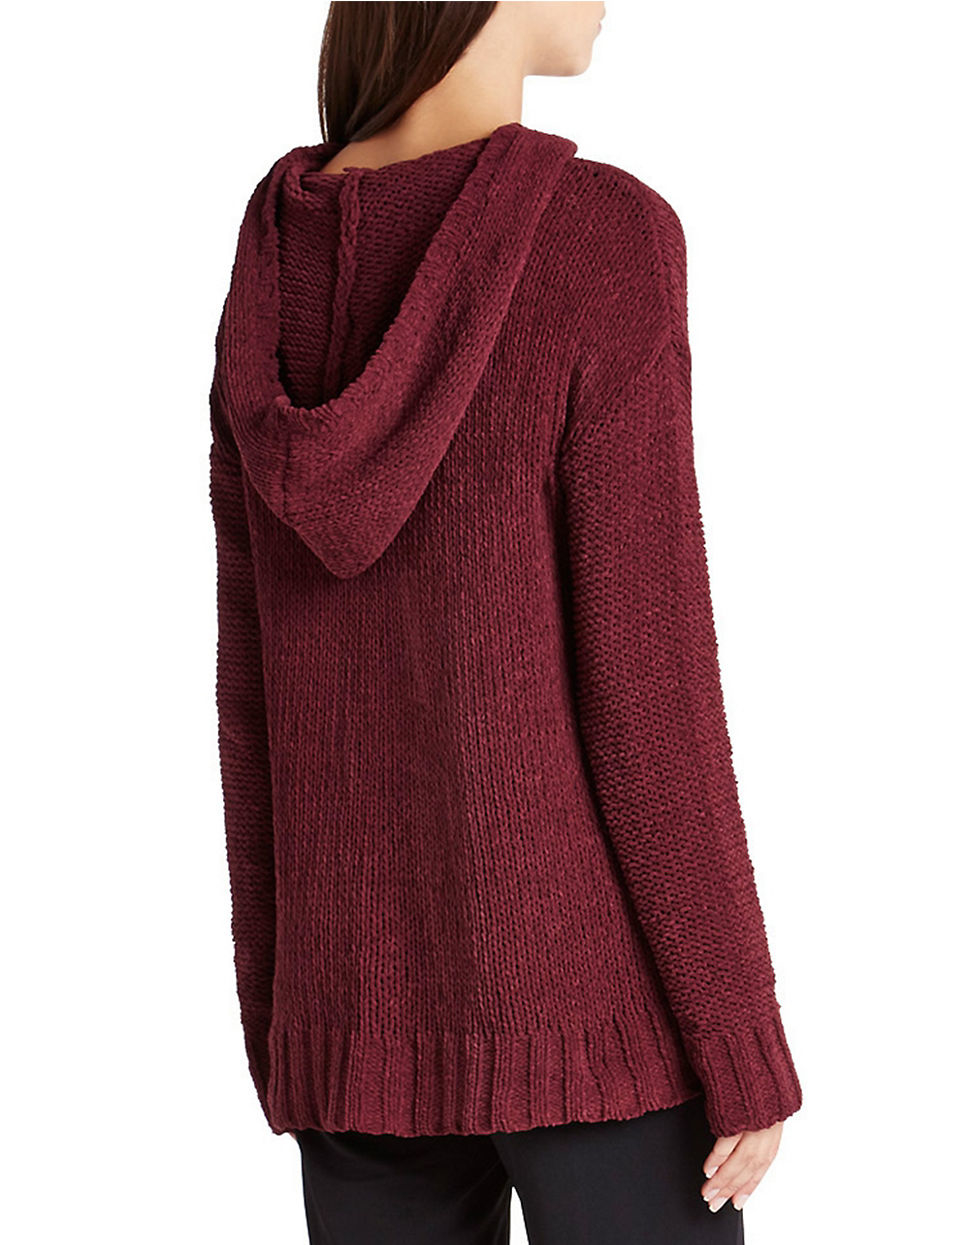 Bcbgeneration Chenille Yarn Hooded Tunic Sweater in Red | Lyst